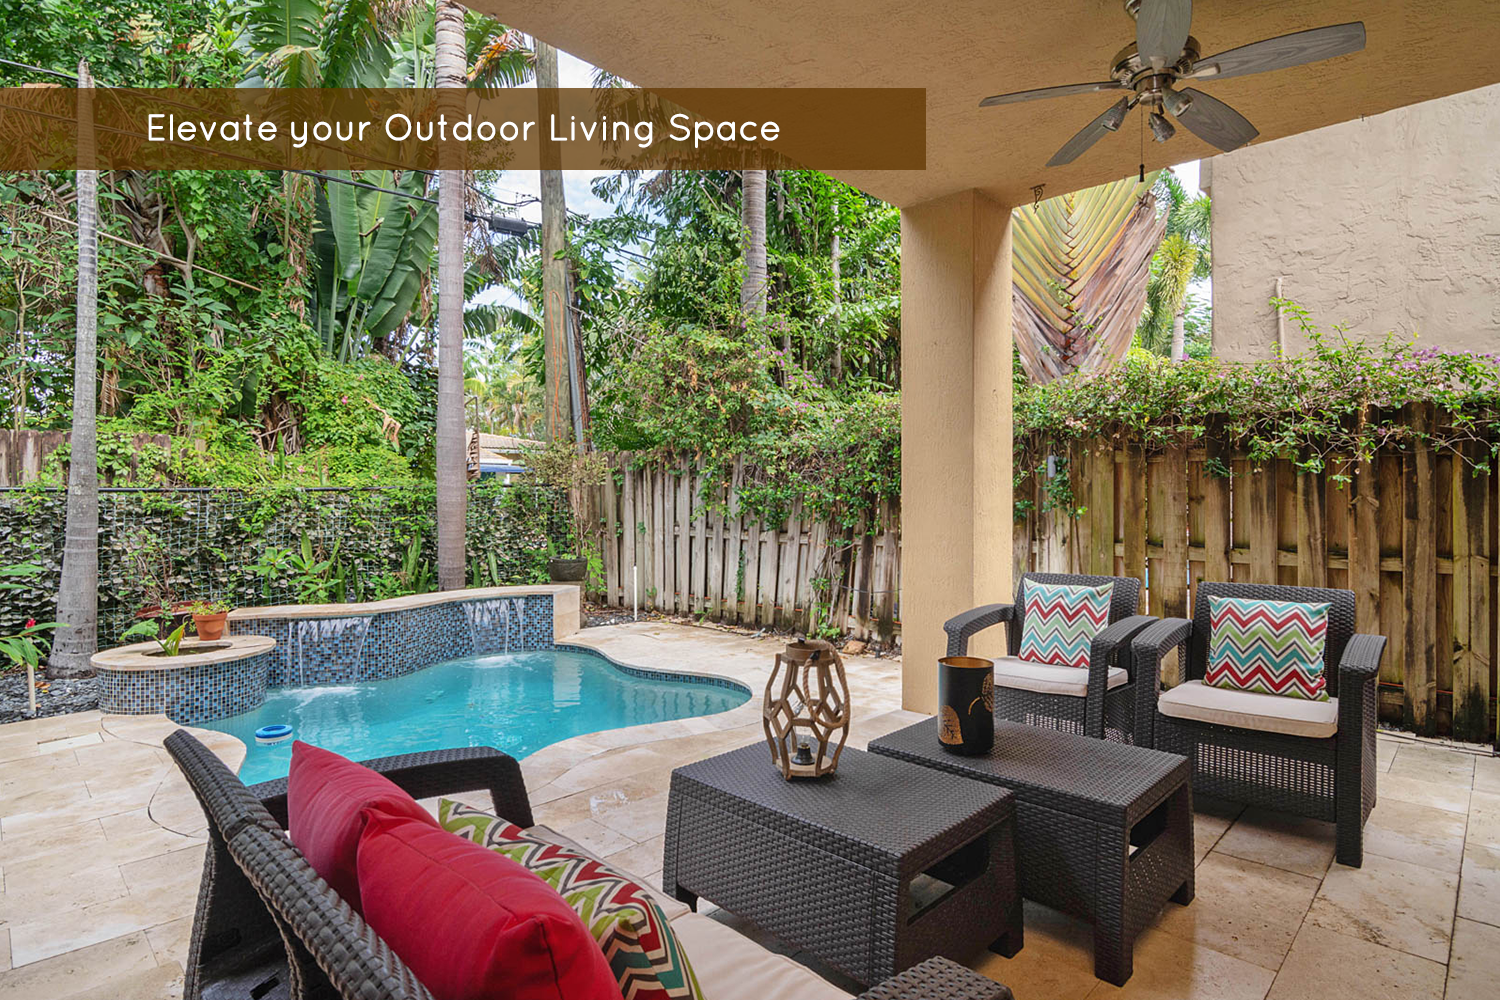 elevate-your-outdoor-living-space-captiva-design-garden-exterior-poolside-bridget-king.png